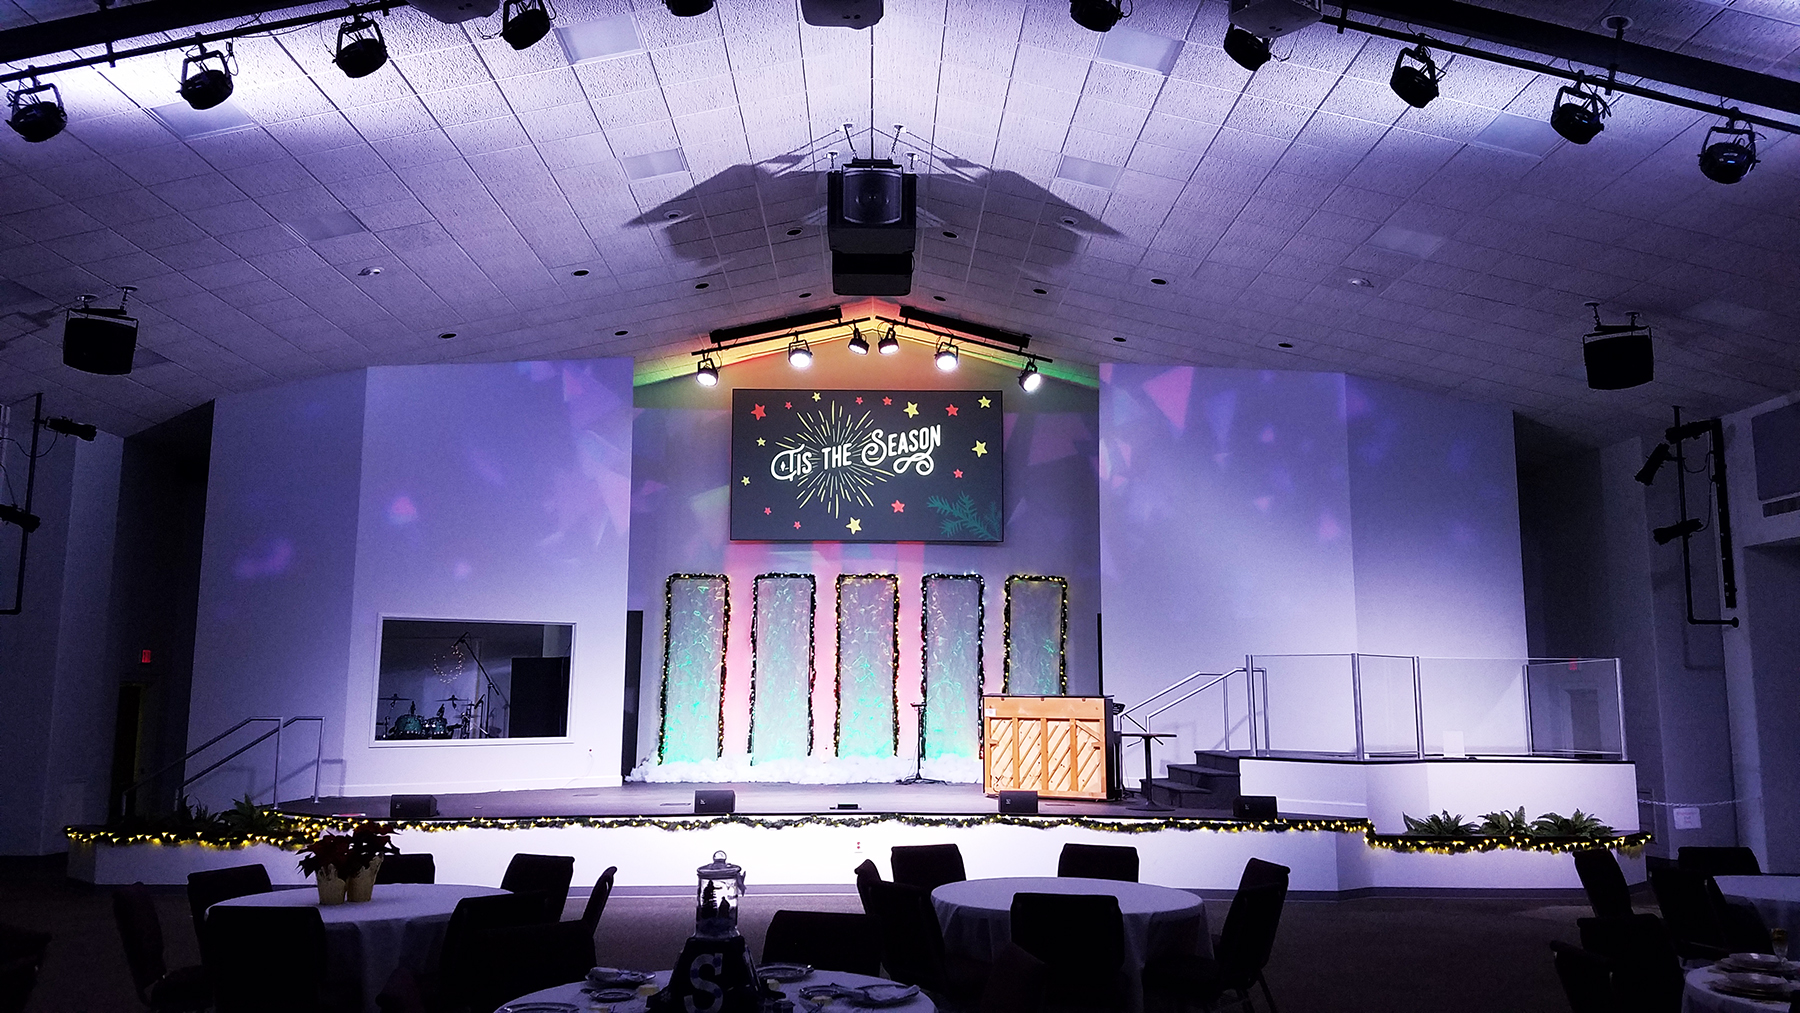 The church's new main PA array is comprised of three 15-inch speakers in an L-C-R configuration that, along with two rear speakers, provides a full 5.1 surround system.